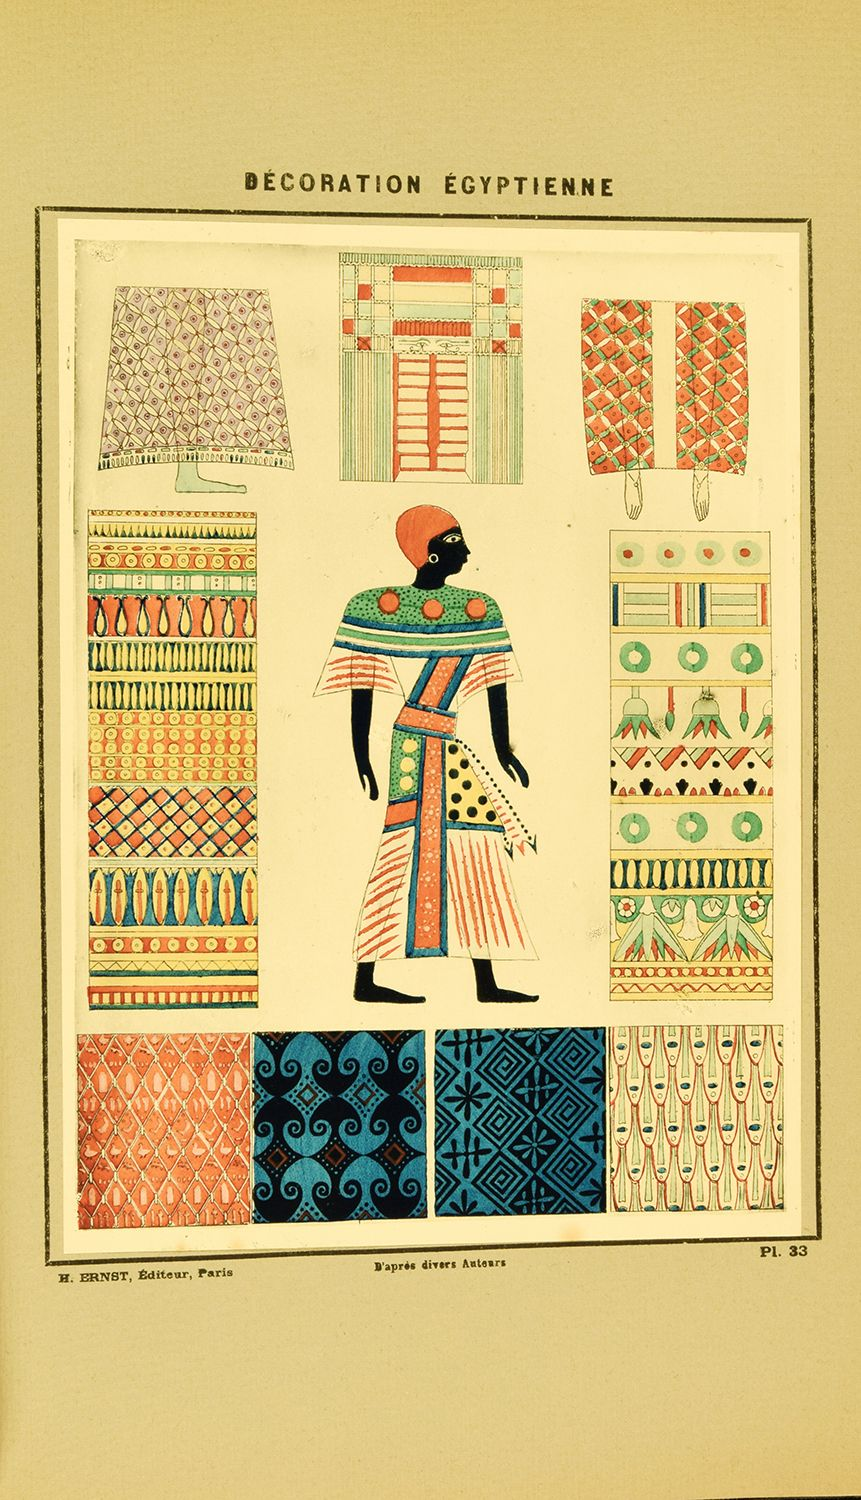 """From """"Décoration égyptienne,"""" Paris, Henri Ernst, 1923. For more info: http://mannlib.cornell.edu/news/slideshows/egyptmania-and-fashion-1920s"""